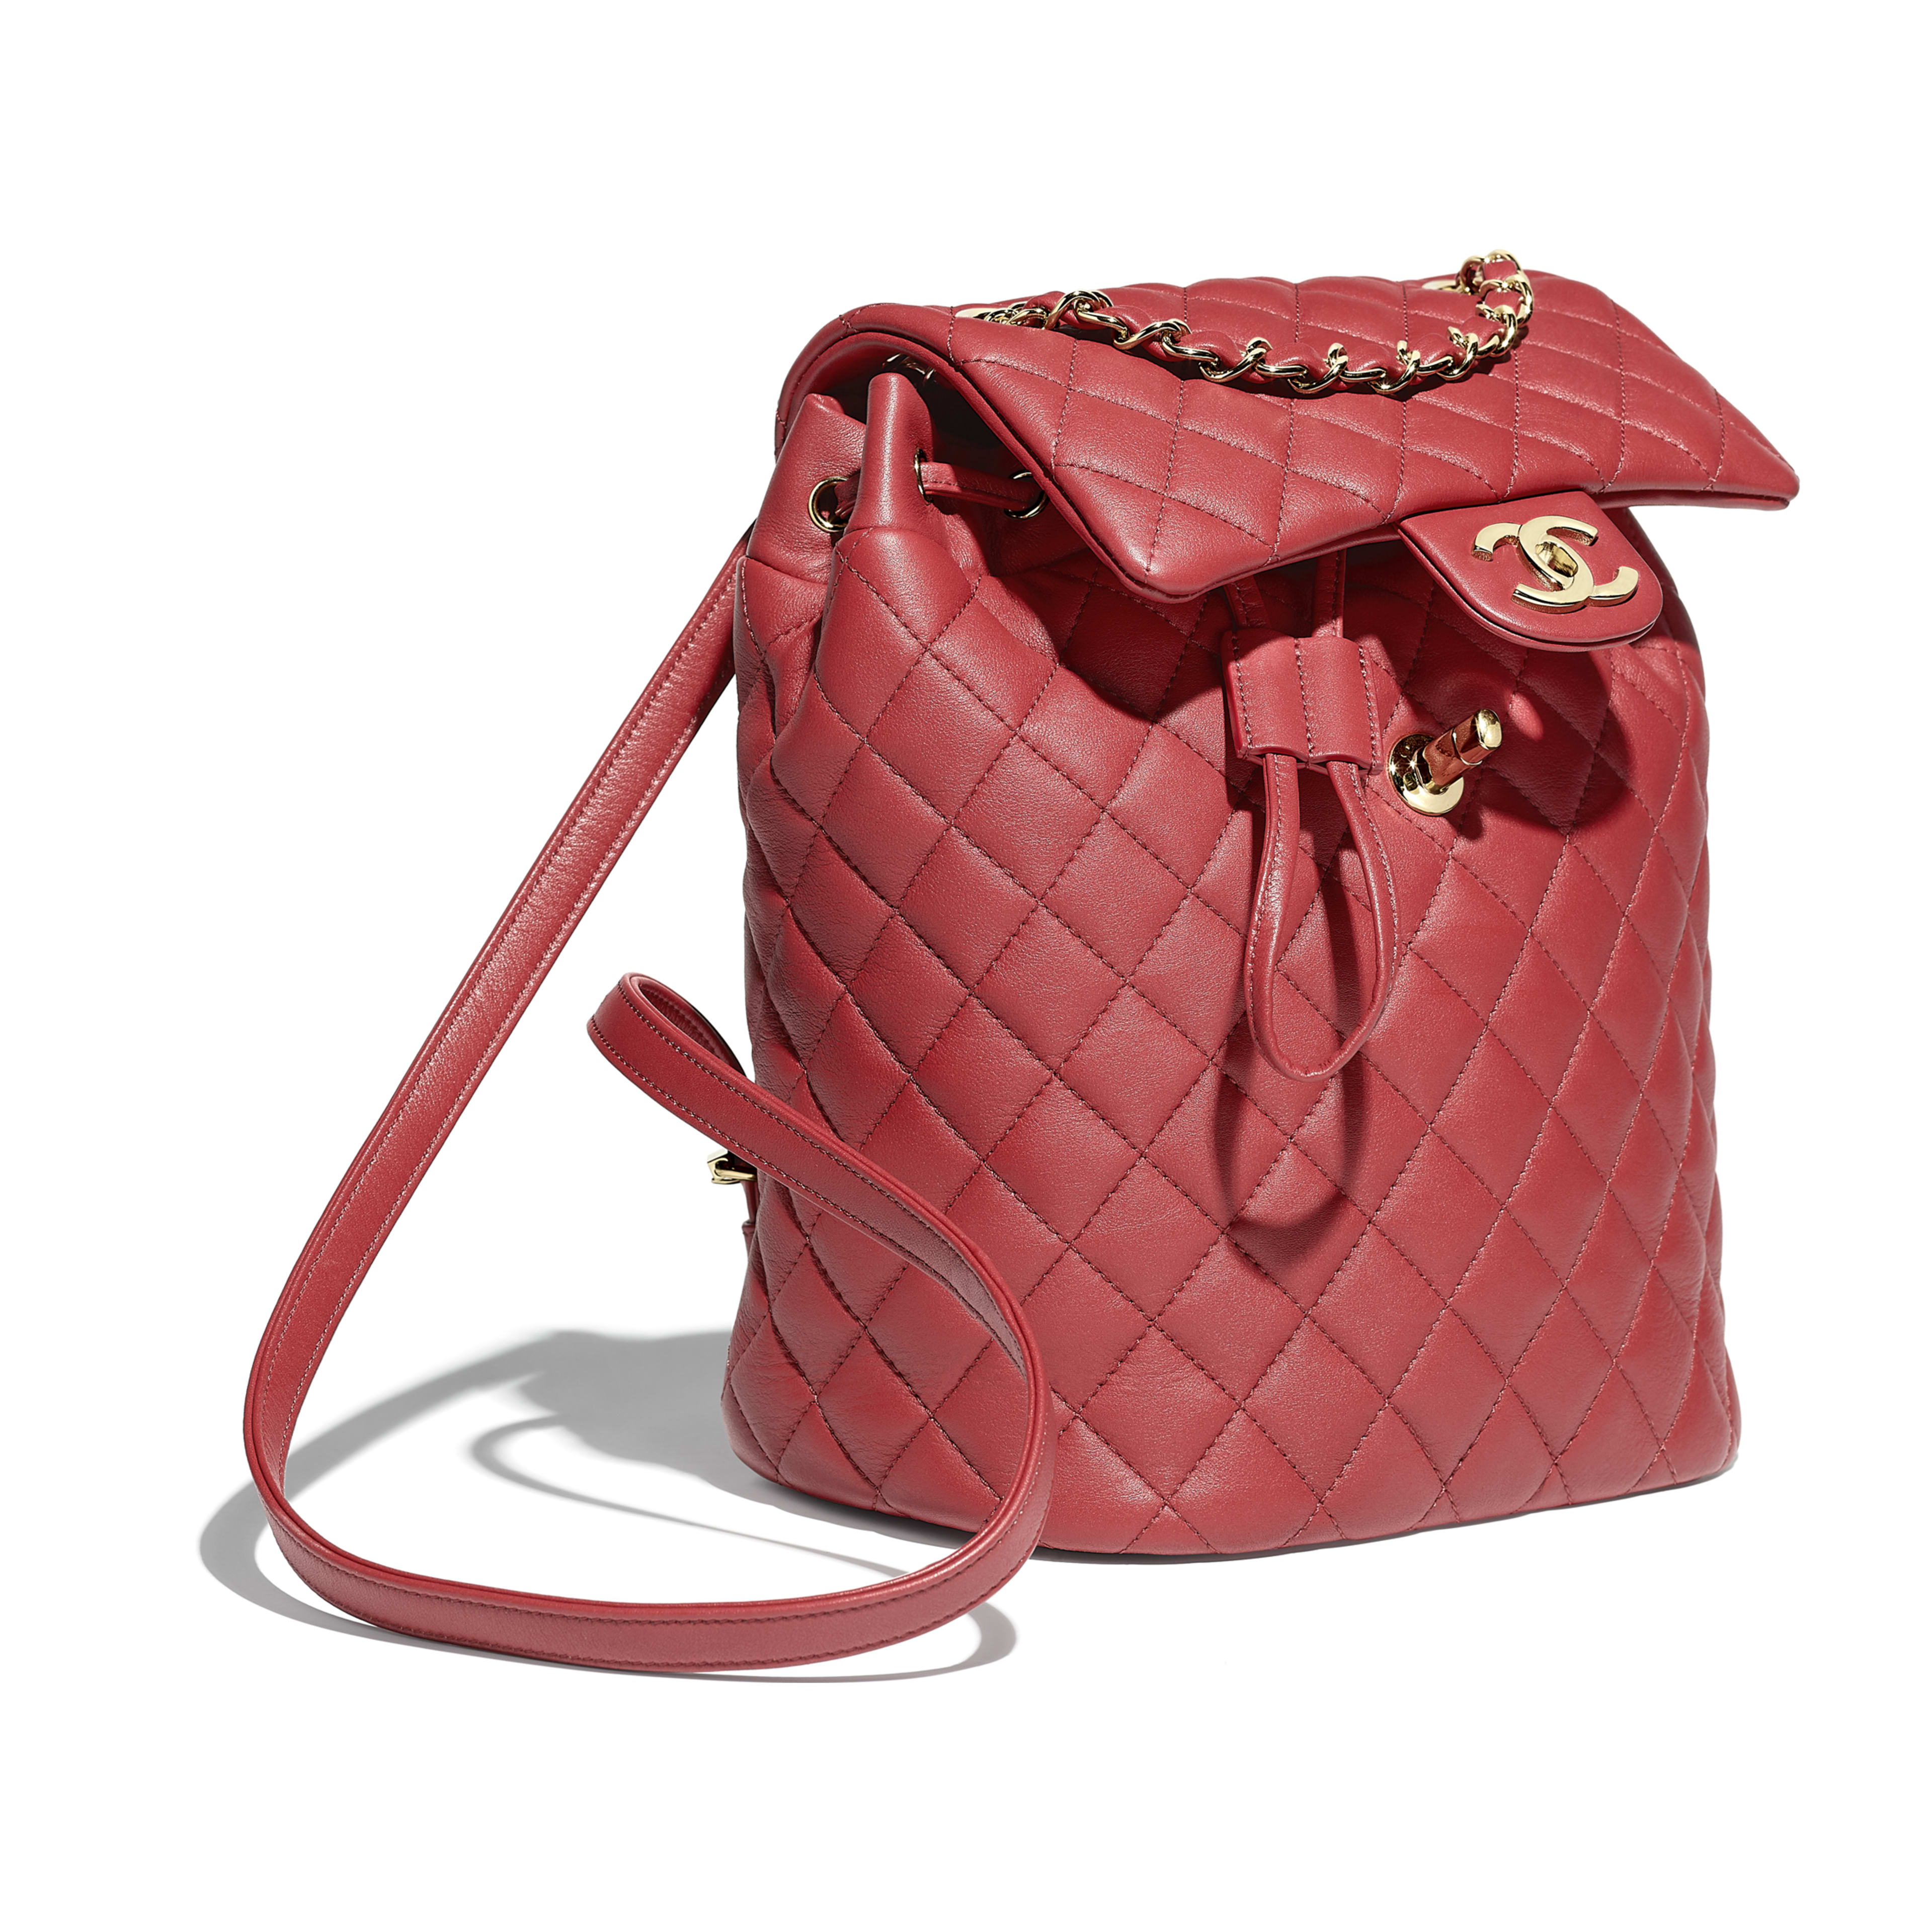 Backpack - Red - Calfskin & Gold-Tone Metal - Other view - see full sized version